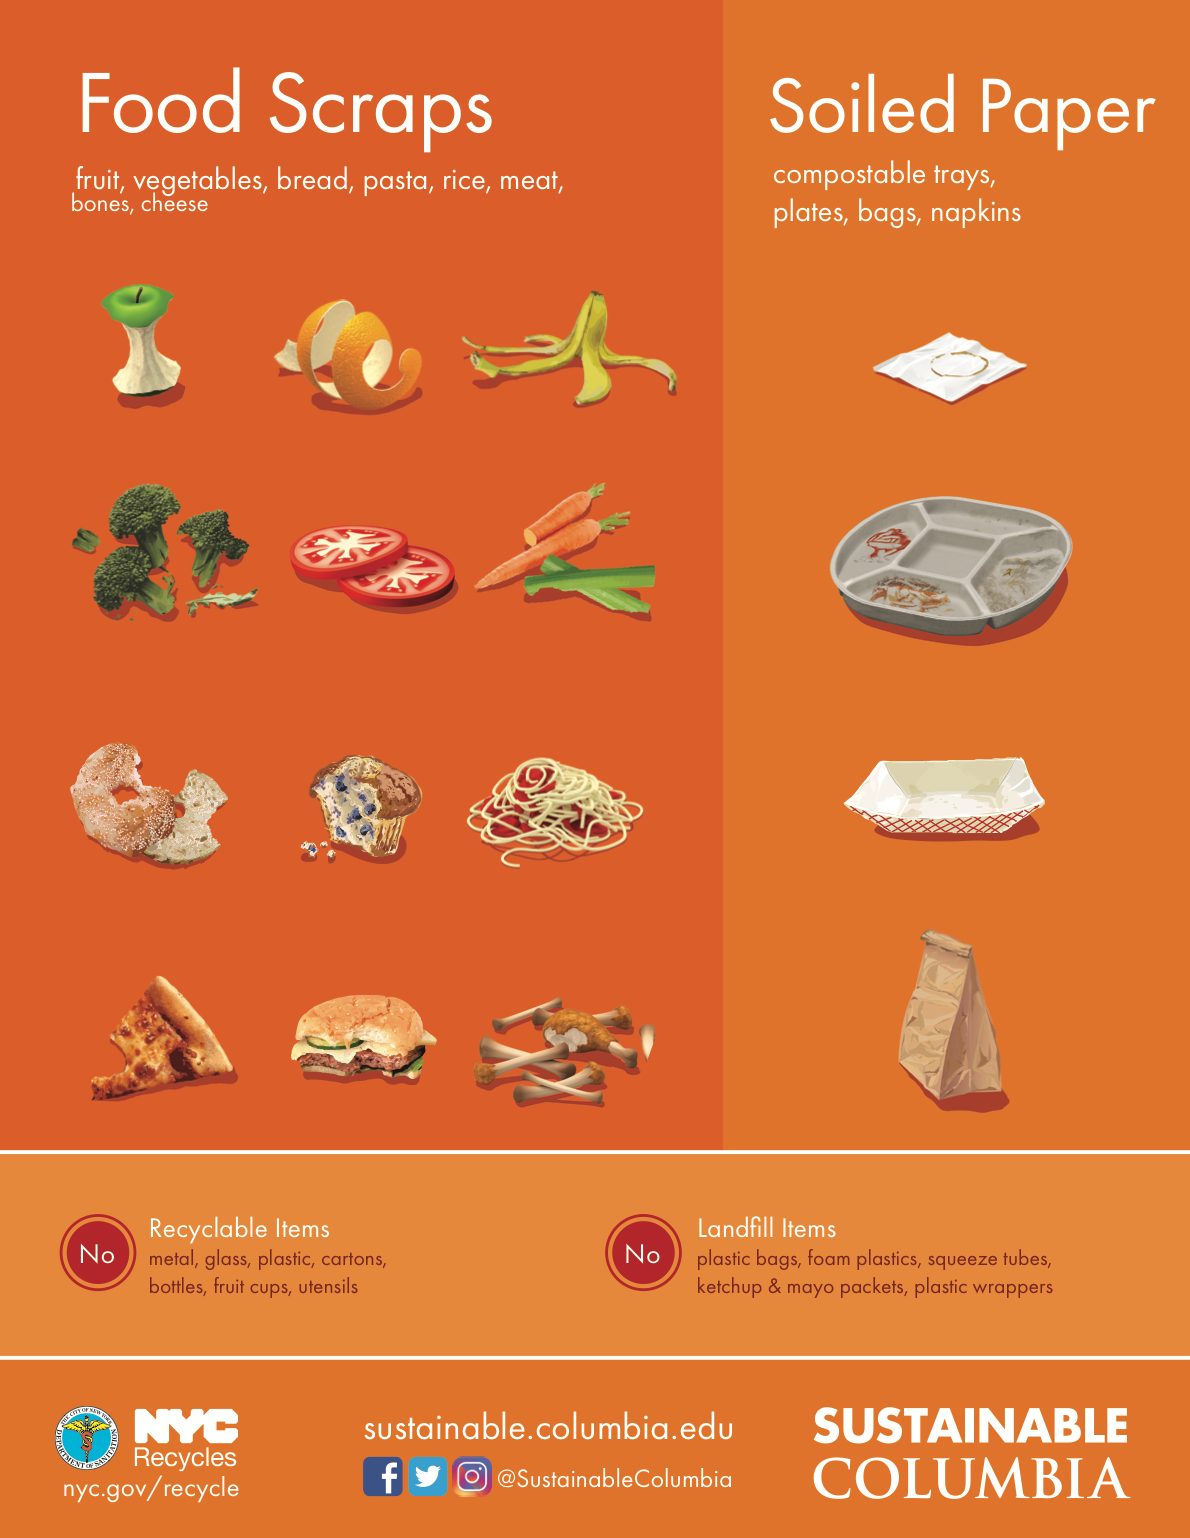 Food Scraps recycling poster